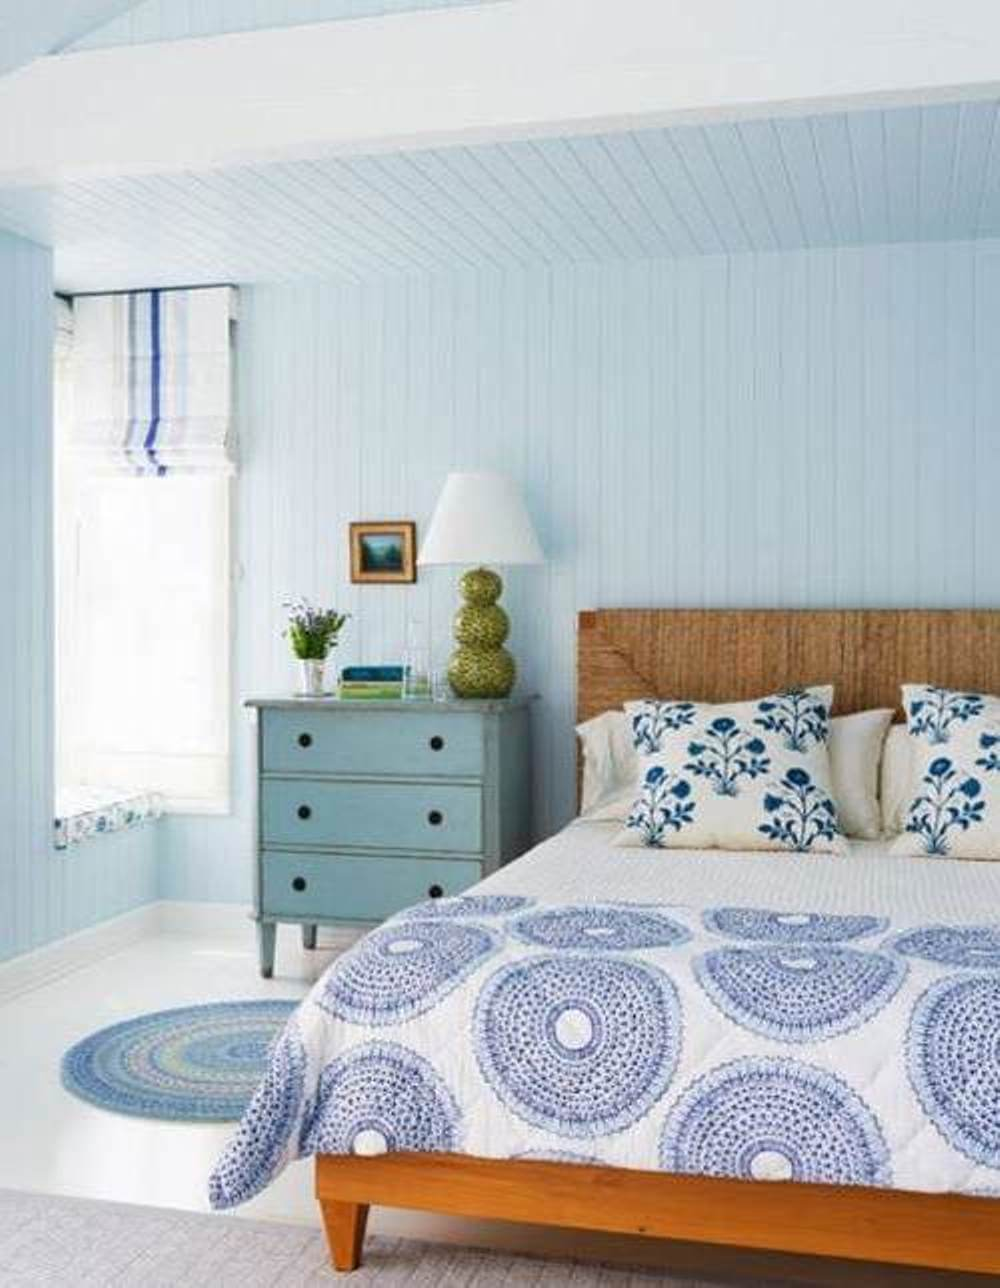 10 cool beach inspired bedroom interior design ideas for Beach bedroom ideas pictures